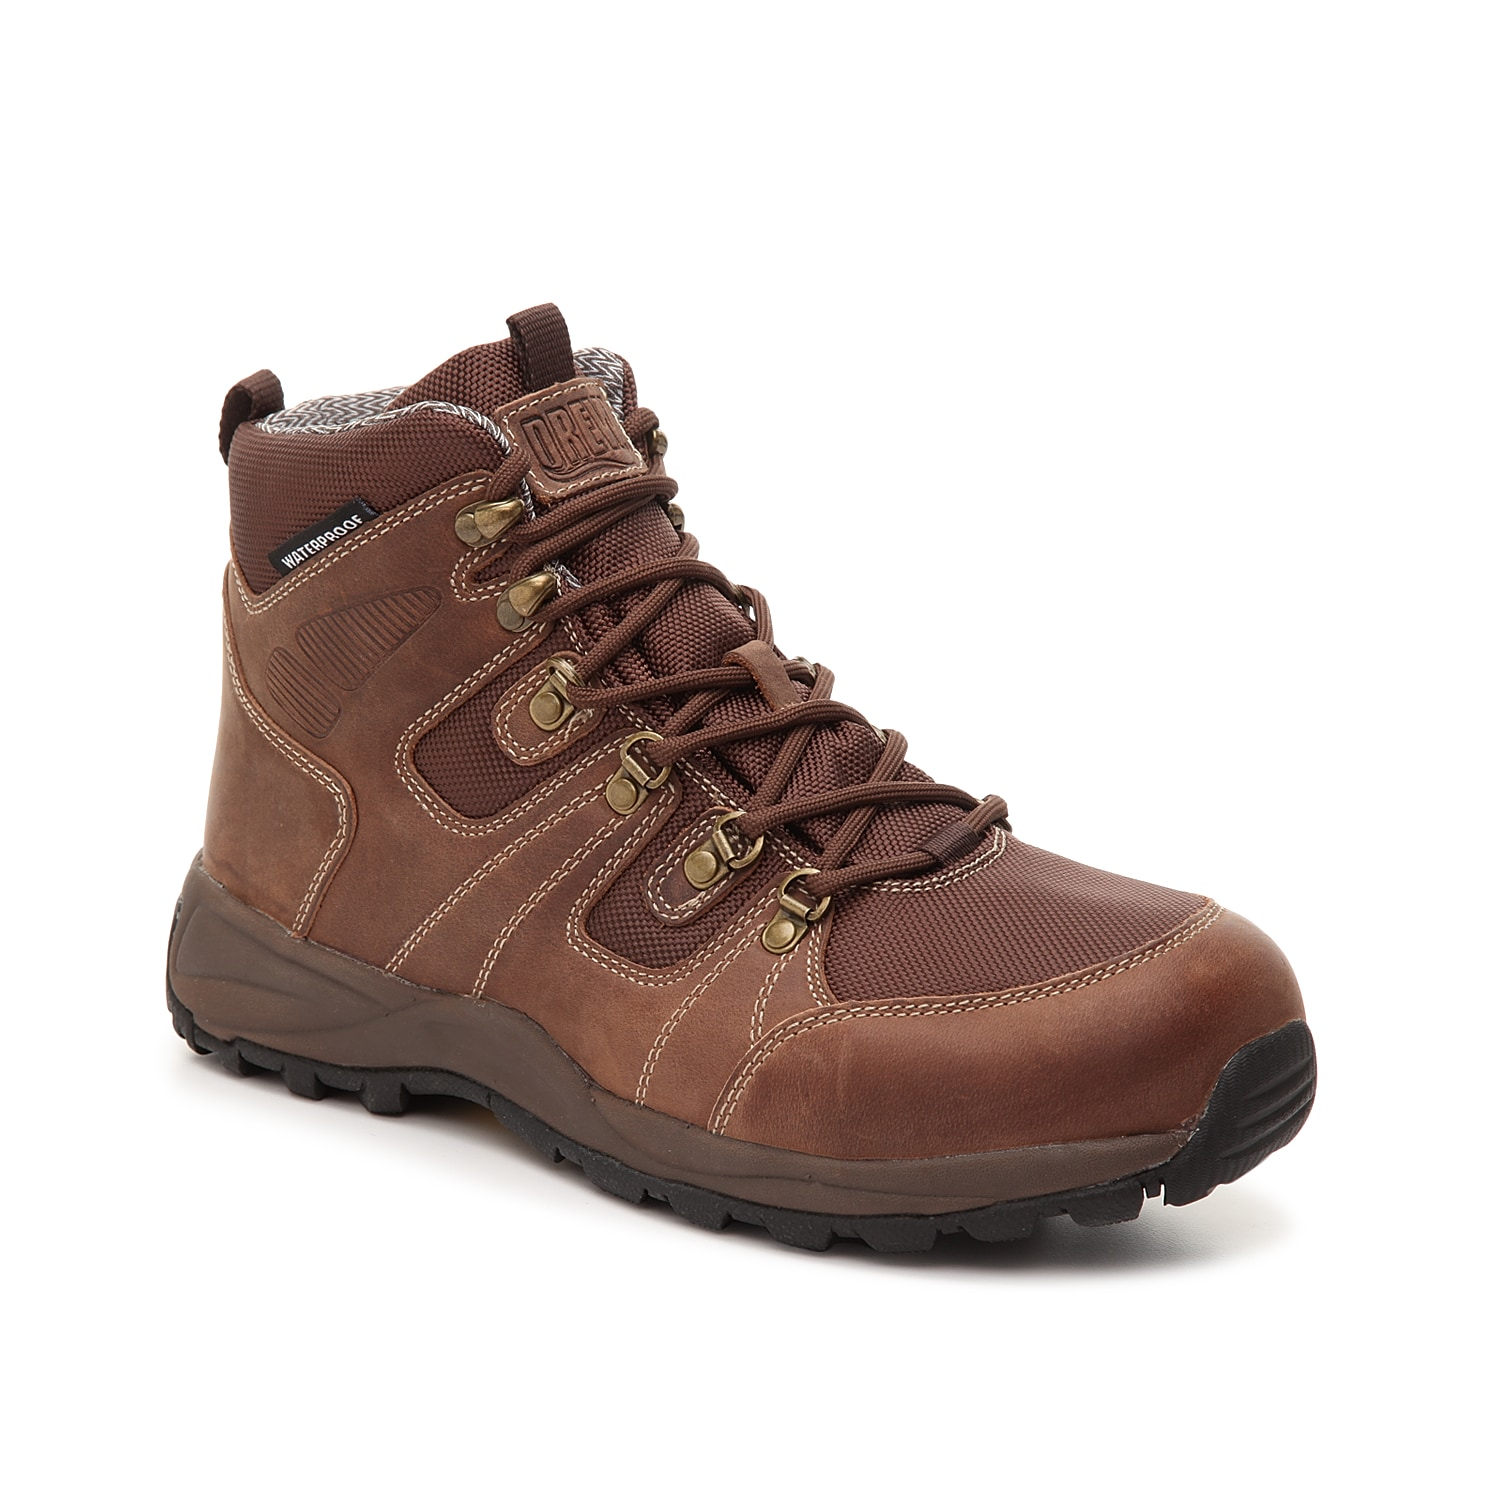 Work in safety with the Trek work boot from Drew. This waterproof pair features a removable insole for custom comfort and a sturdy rubber sole to prevent slipping.